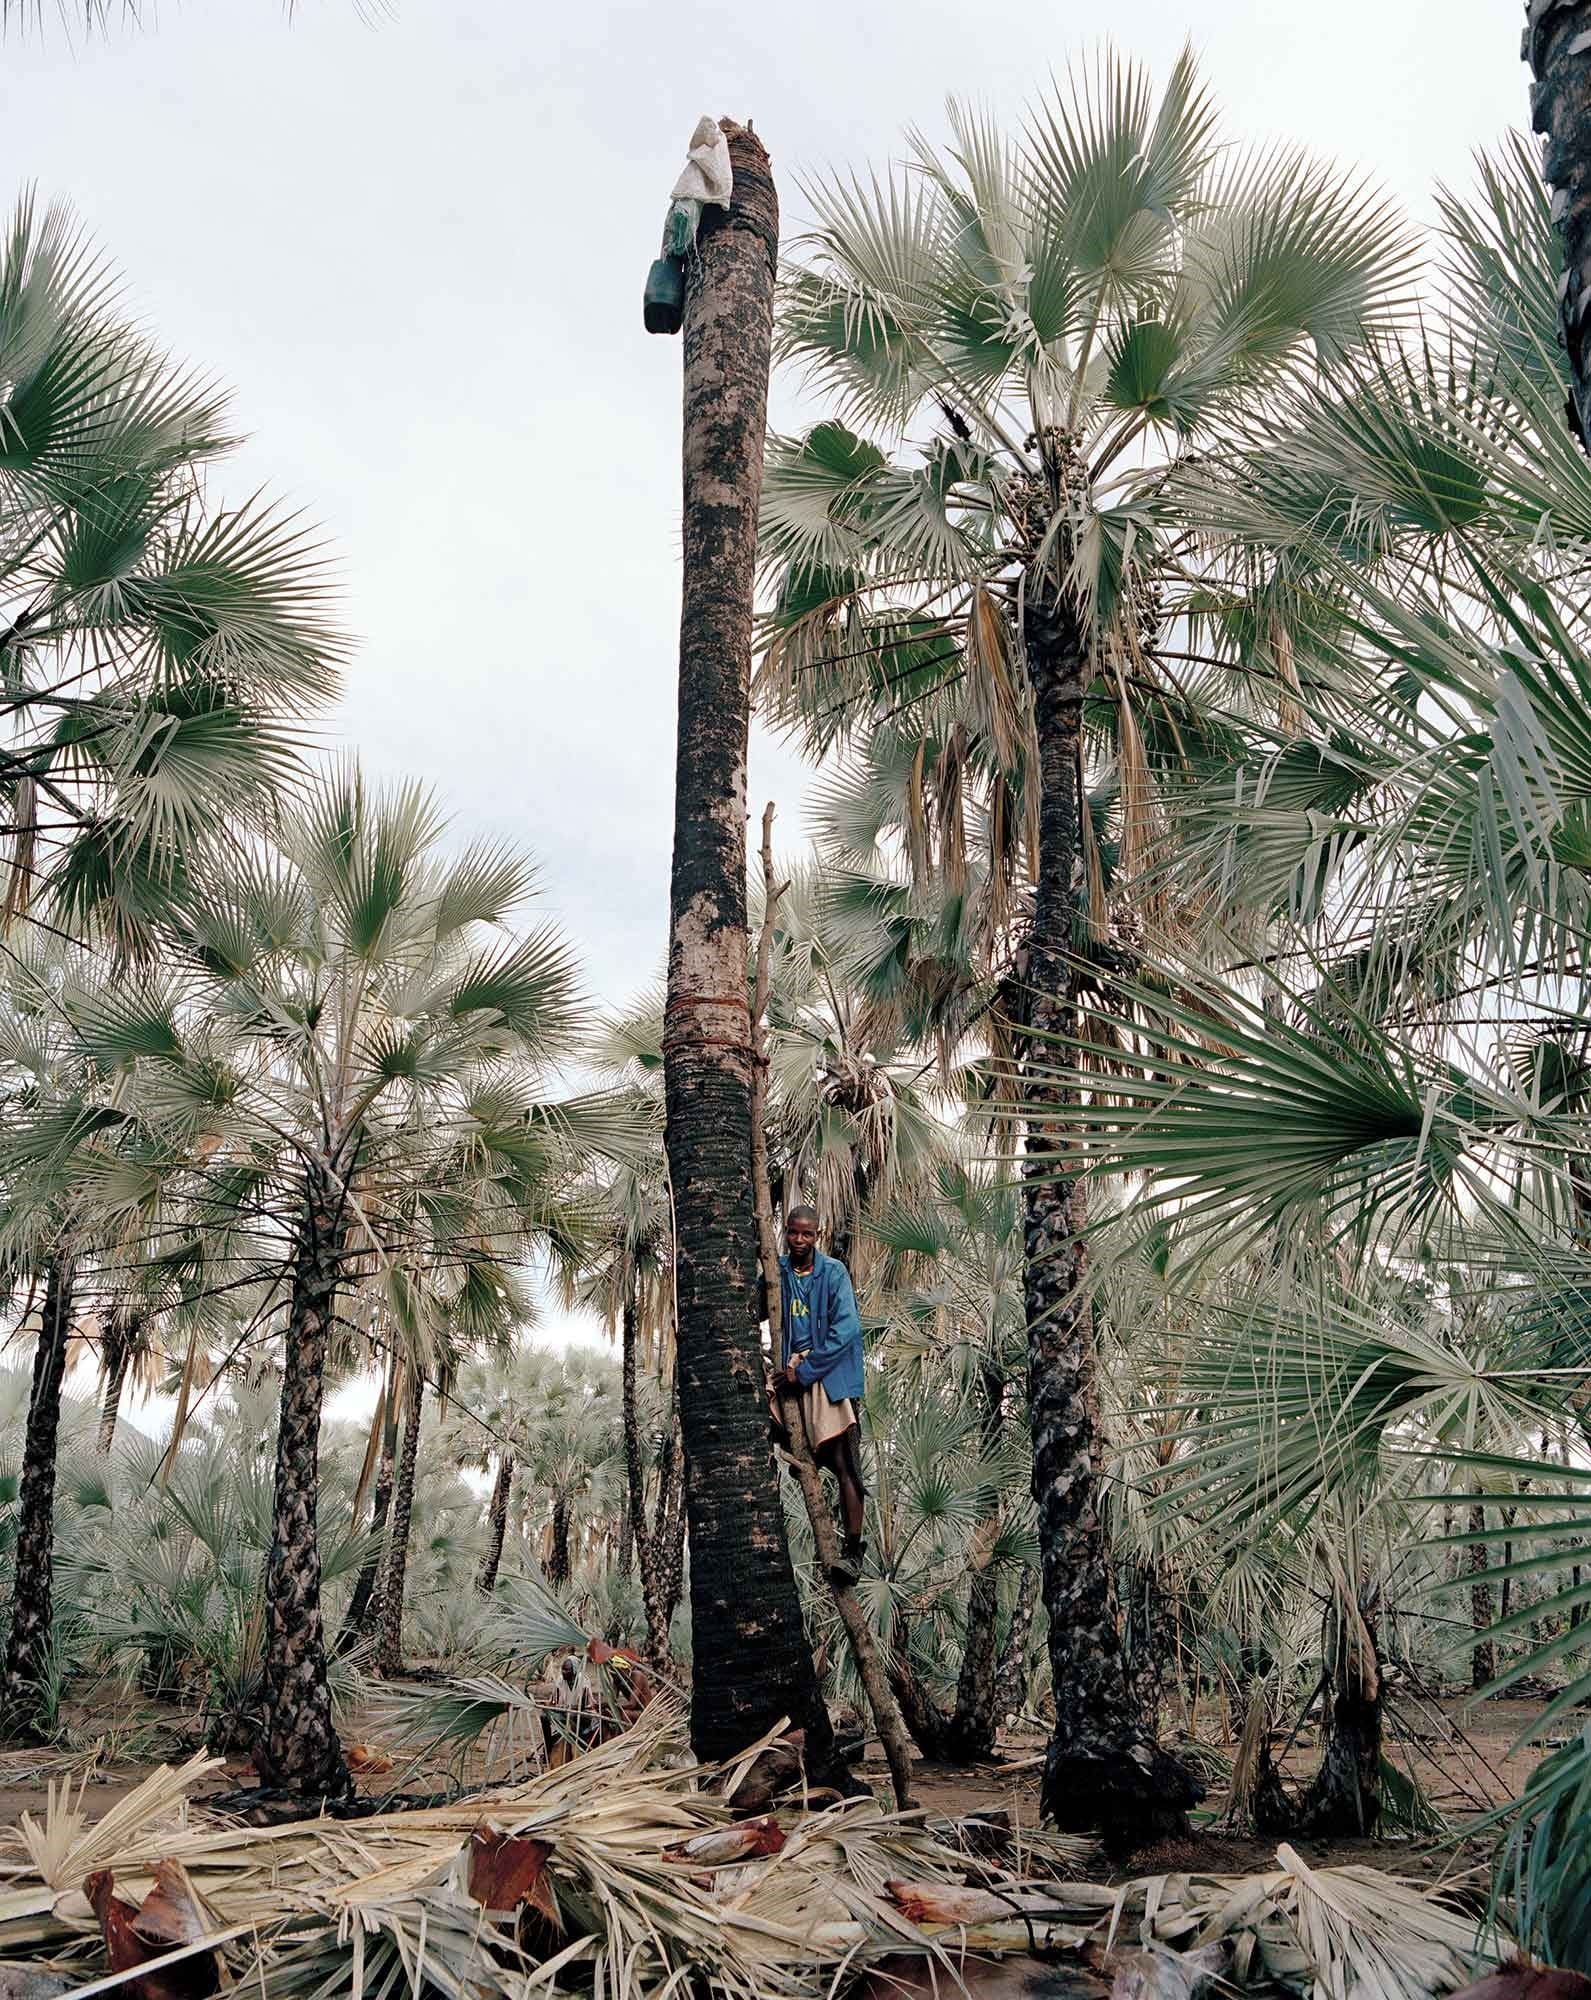 Marupuho Tjiposa, Wine Palm Collector by Kyle Weeks